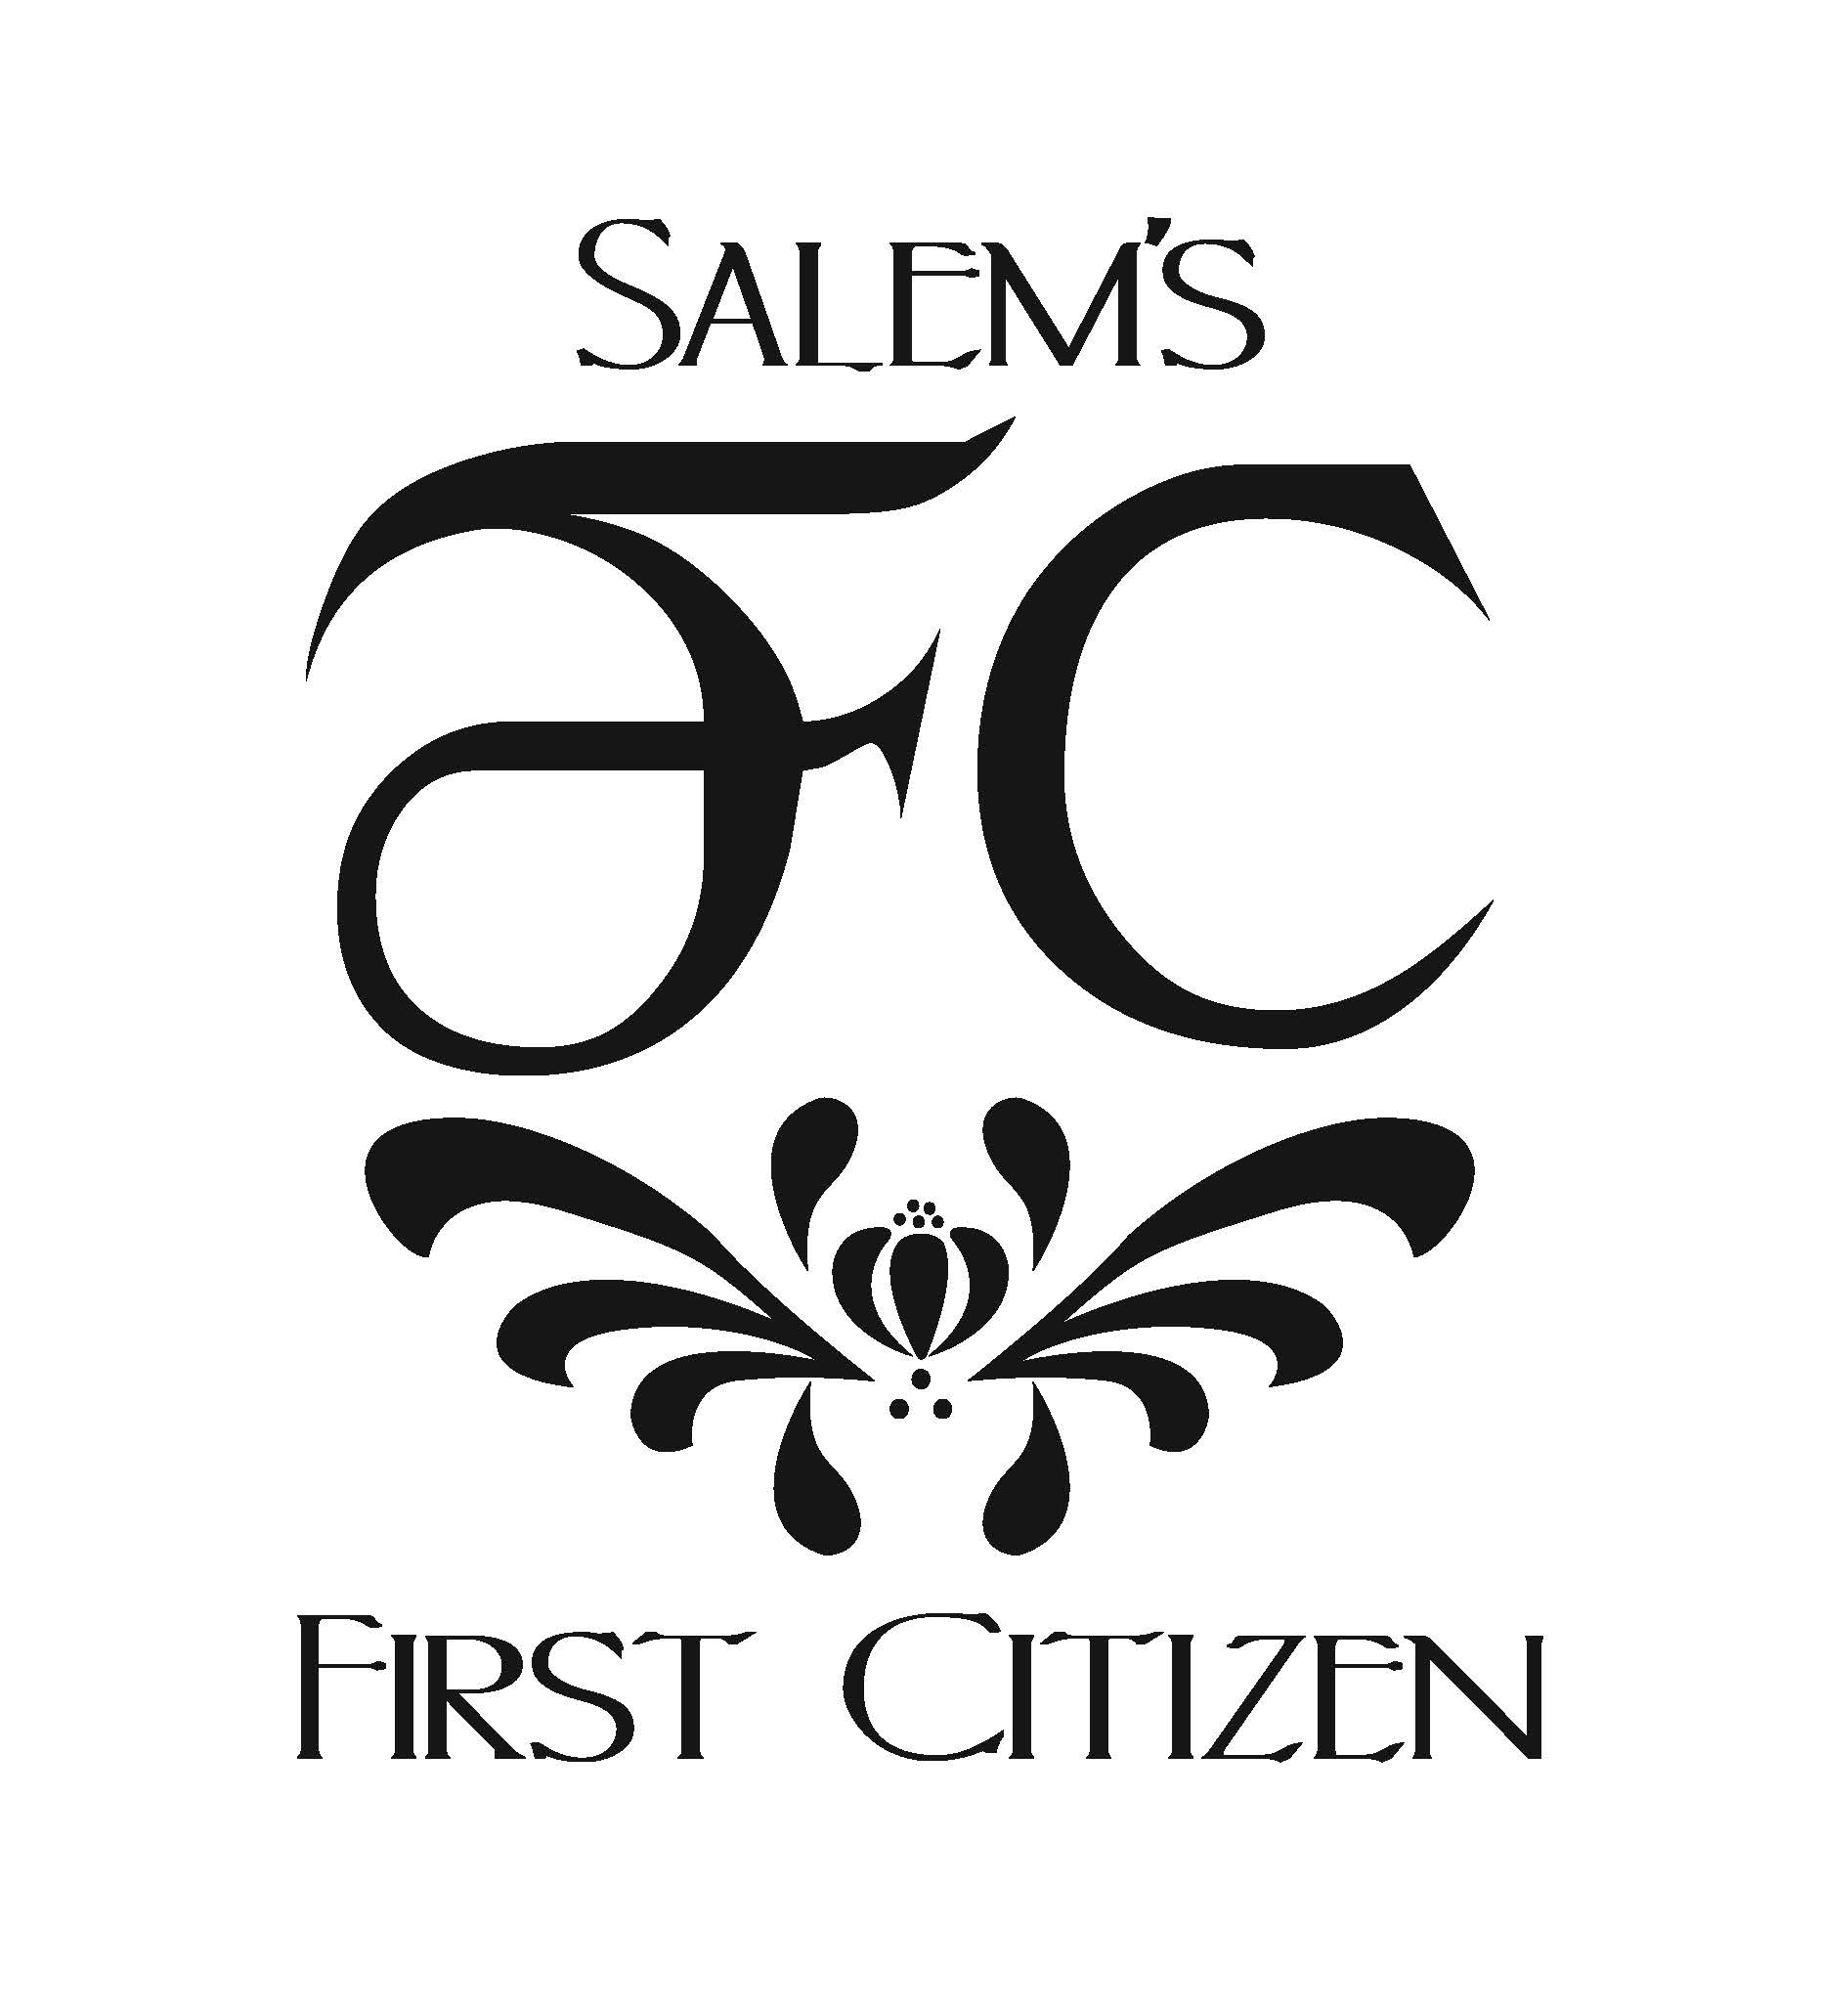 69th First Citizen Awards Banquet Nominees Announced